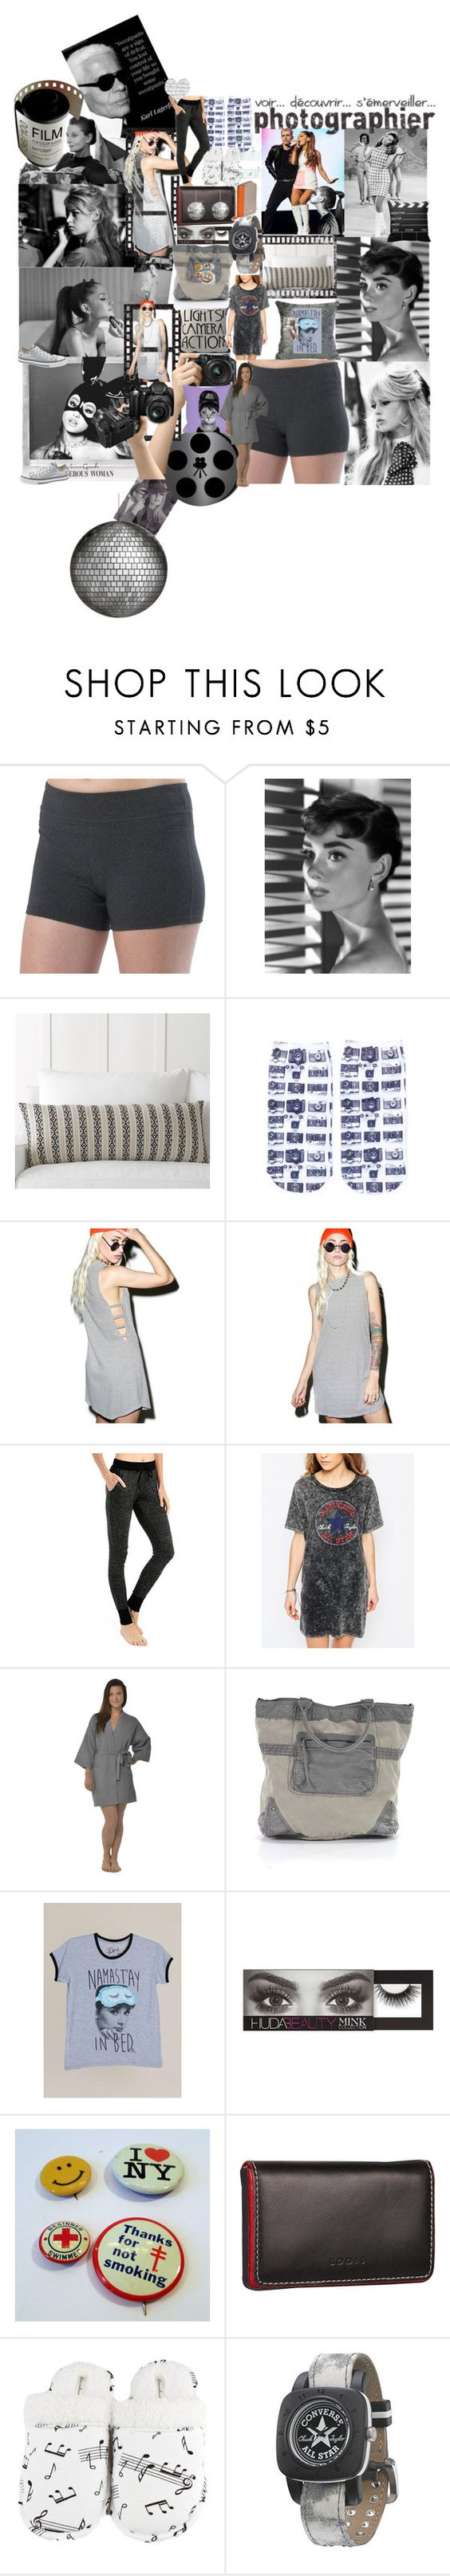 """Girlys got Moves"" by lerp ❤ liked on Polyvore featuring GE, prAna, Pottery Barn, Nikon, Free Press, Audrey 3+1, Love+Grace, Converse, Leisureland and Huda Beauty"